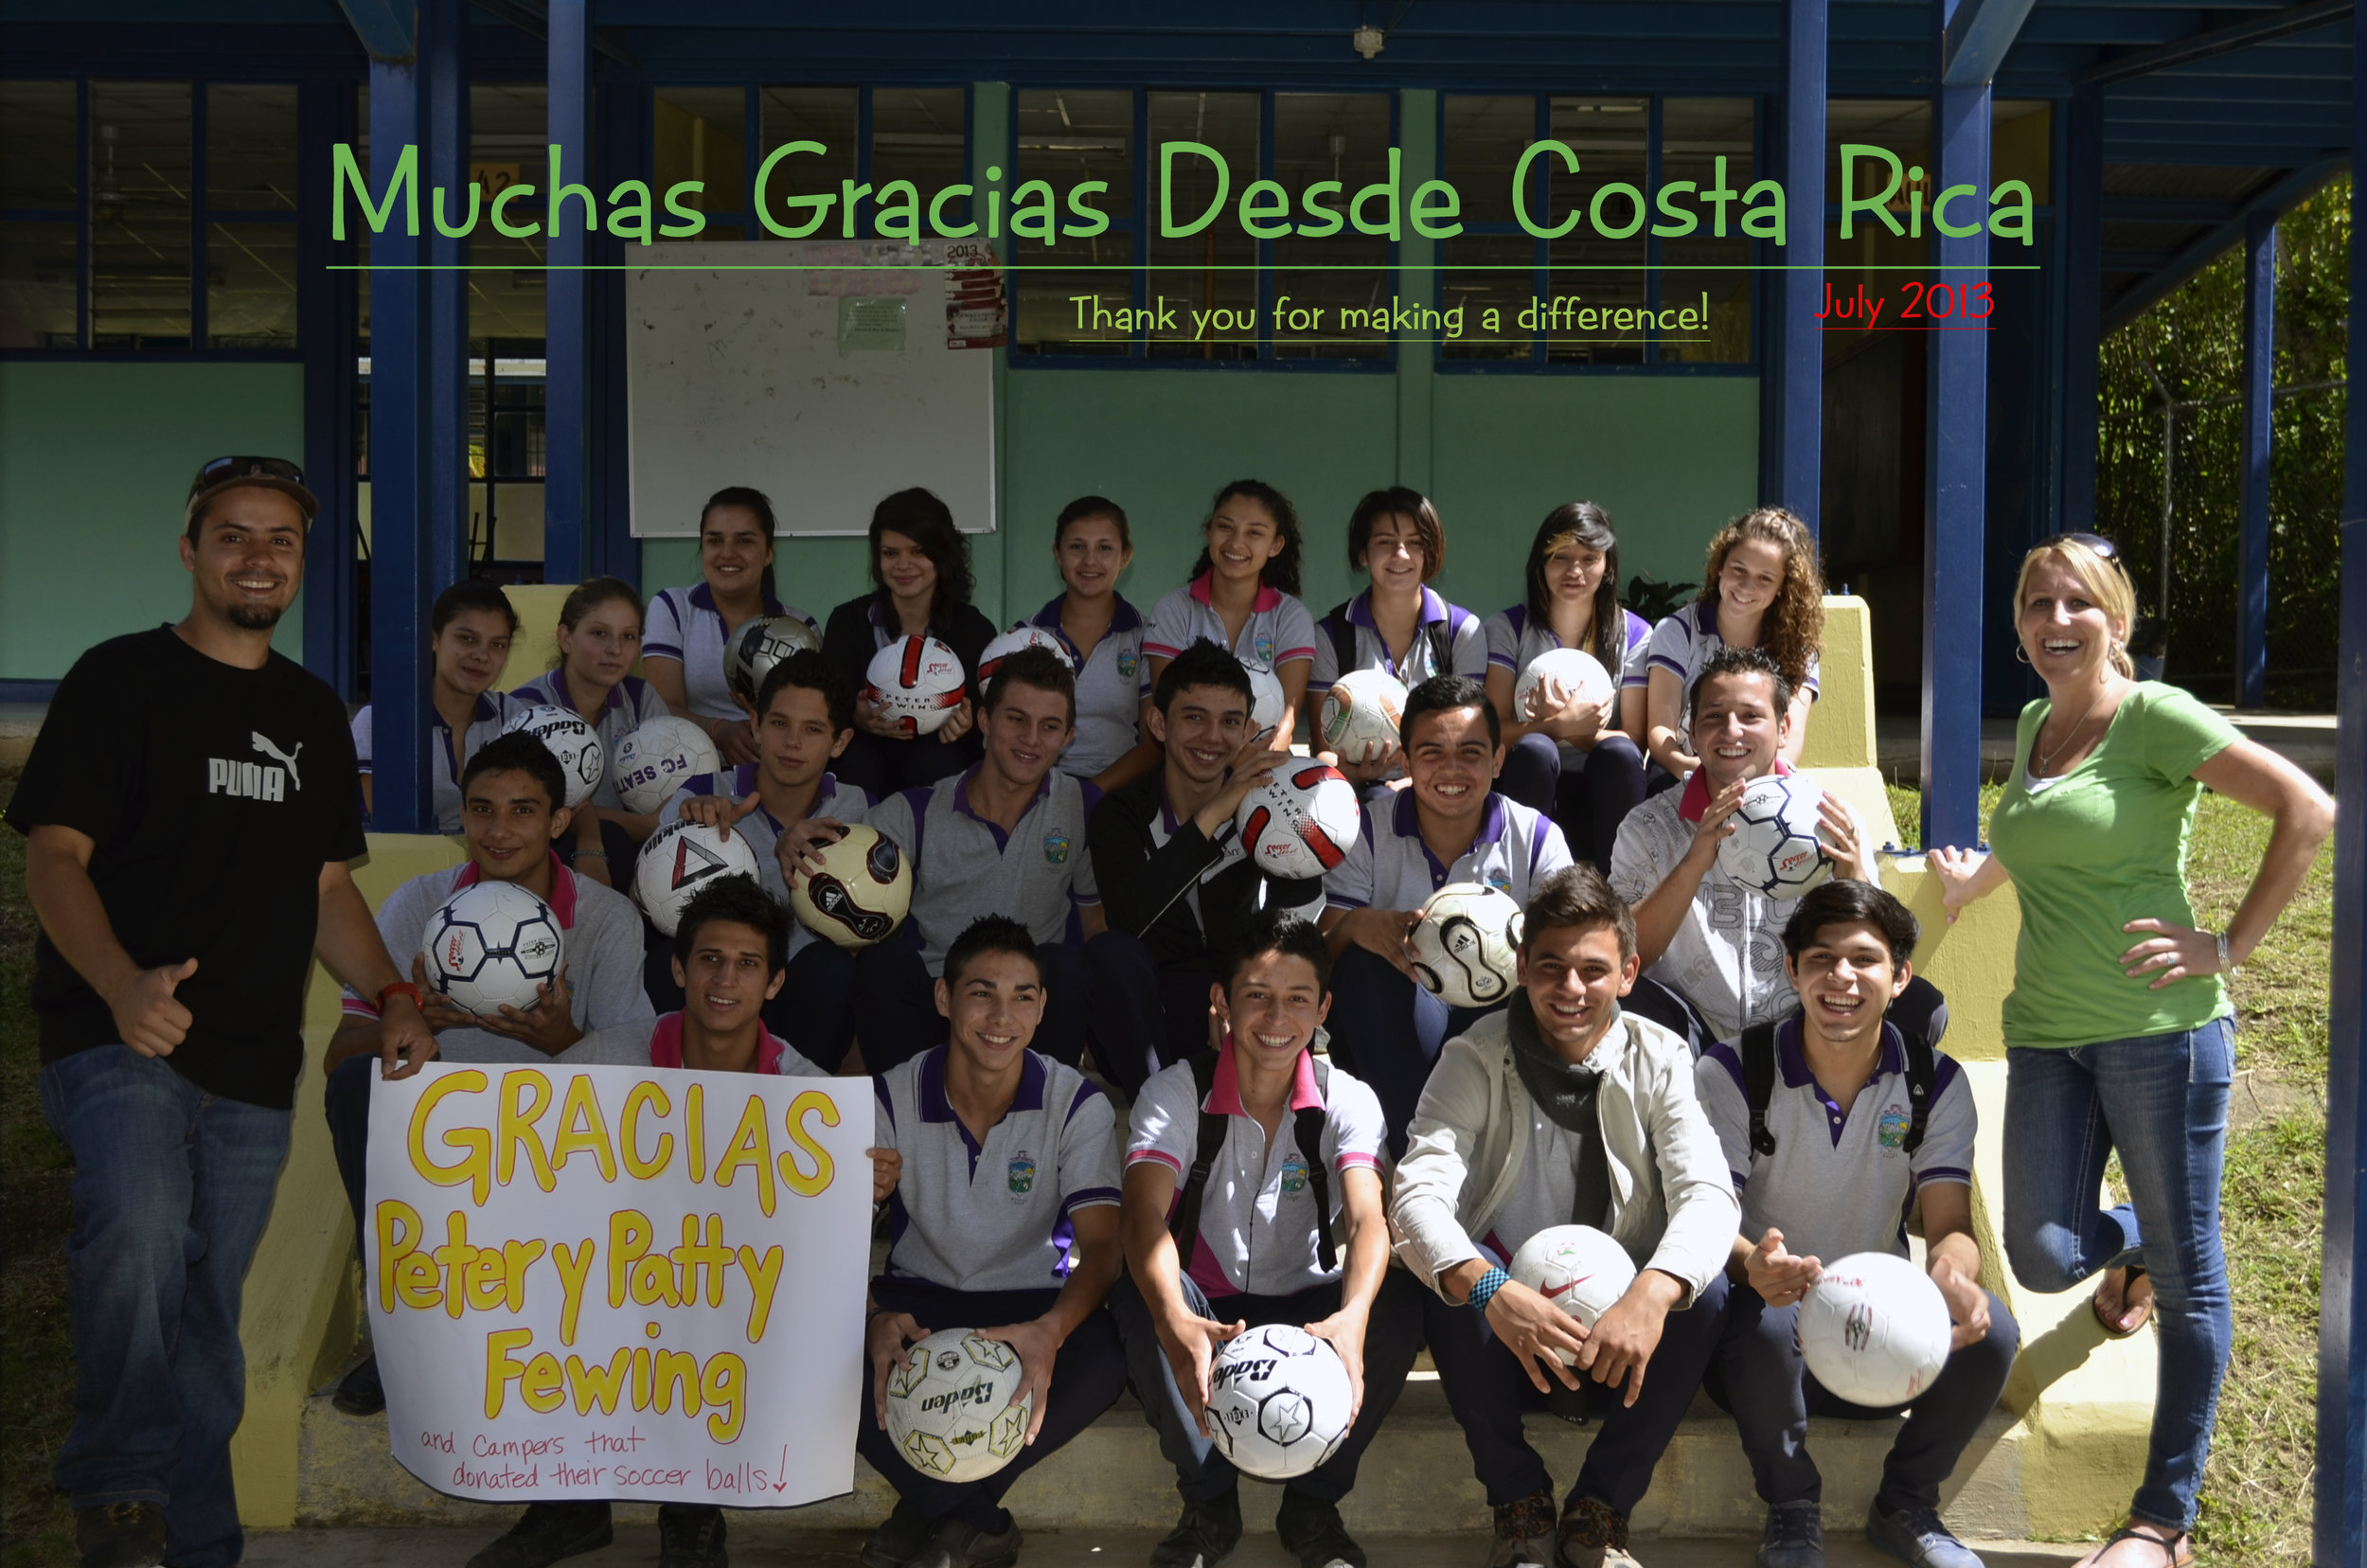 Learning Adventure Tours is active in small Costa Rican communities. We partner with Peter Fewing Soccer Camps and donate soccer balls to schools in the local communities. - www.peterfewingsoccercamp.com